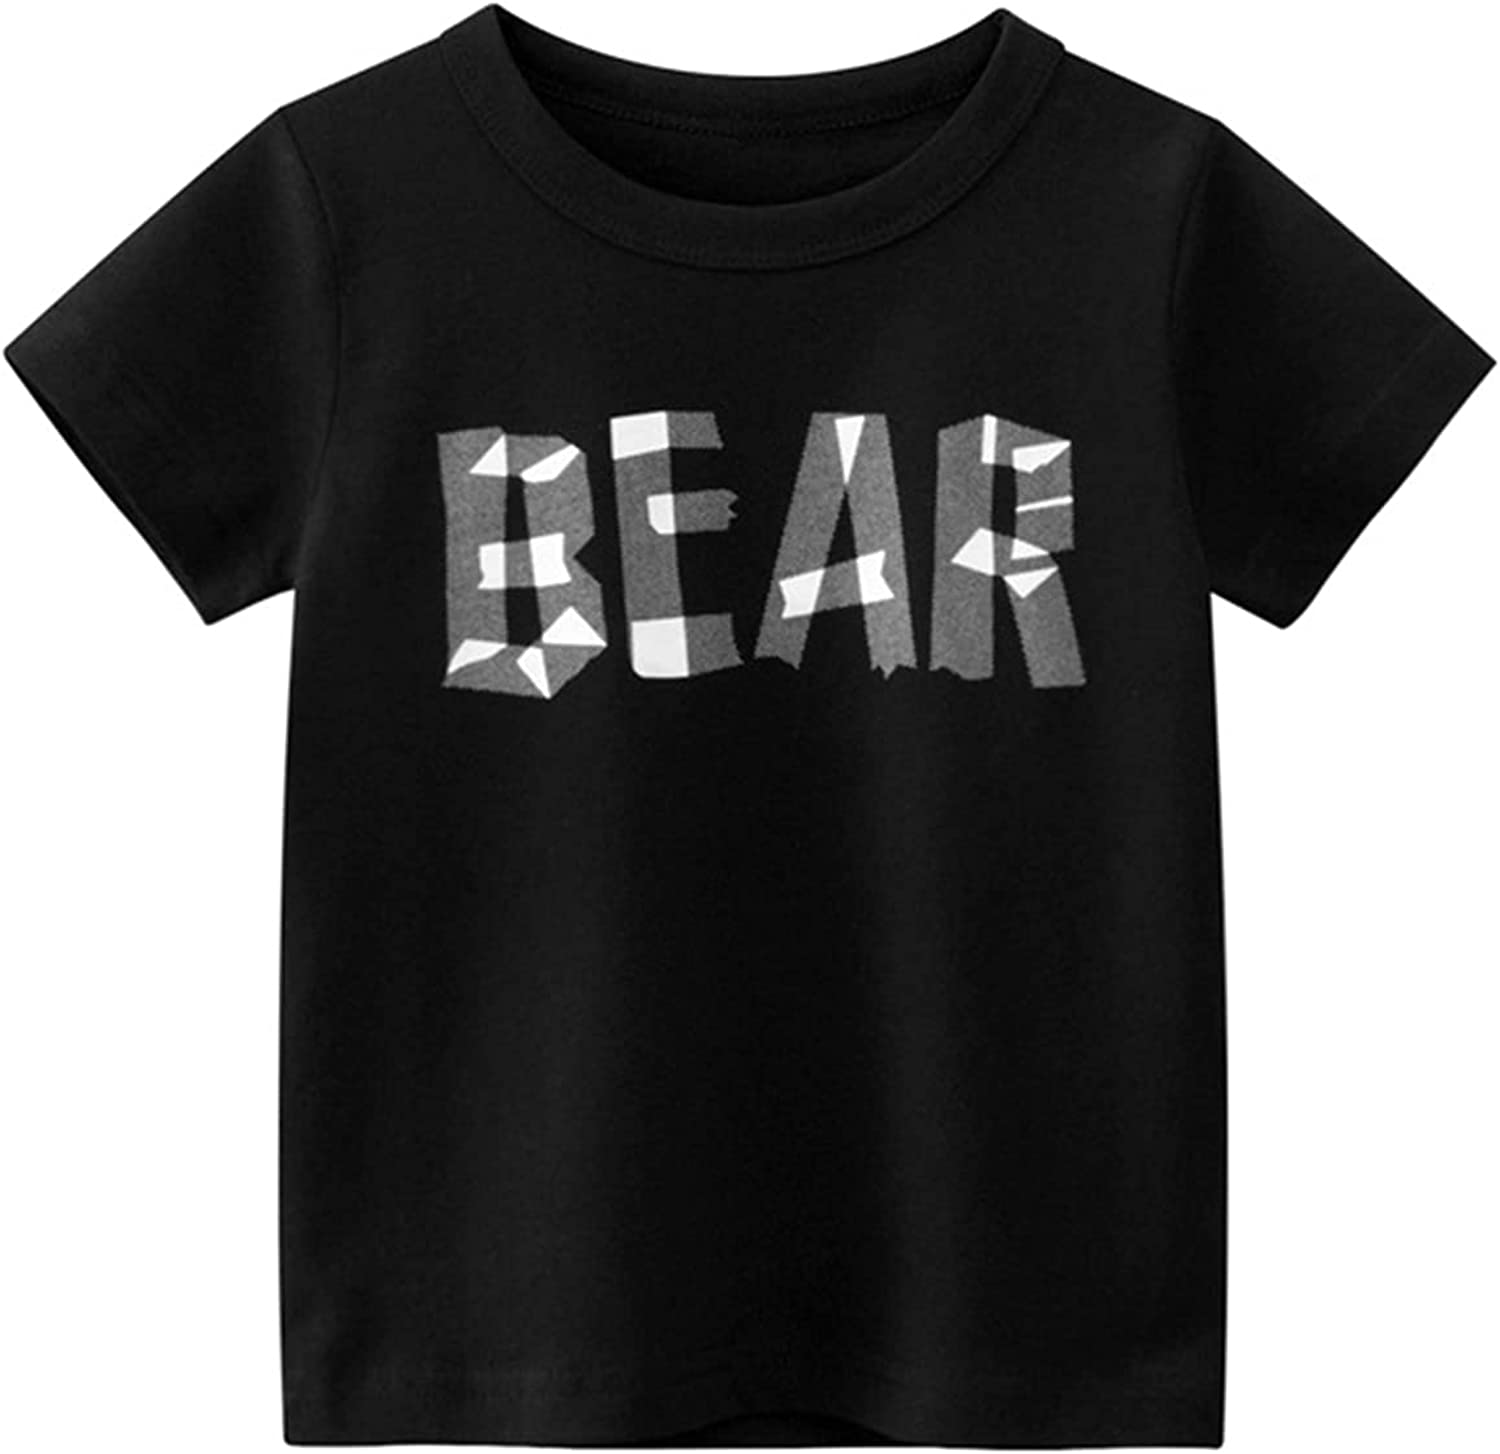 Baby Boys Casual T-Shirt Short Sleeve Bear Letters Print Tee Shirt Tops Summer Clothes 1-6 Years